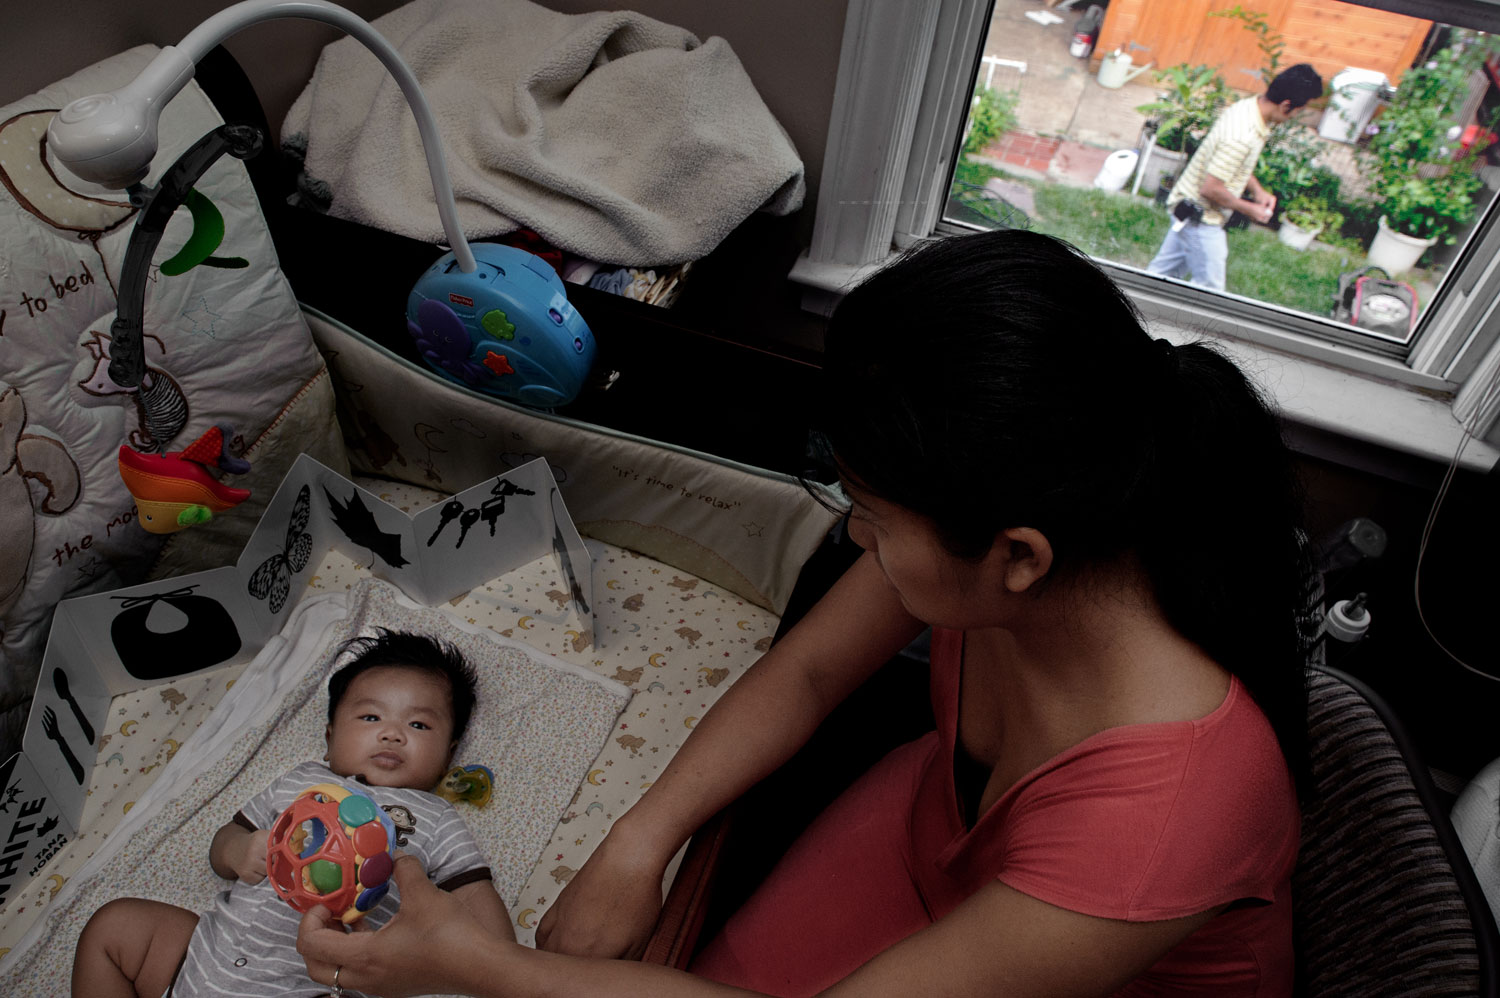 Bronx, New York City, September 2011.Sophie Keo plays with her first-born son while her husband, Paul, works in the yard of their recently purchased home.